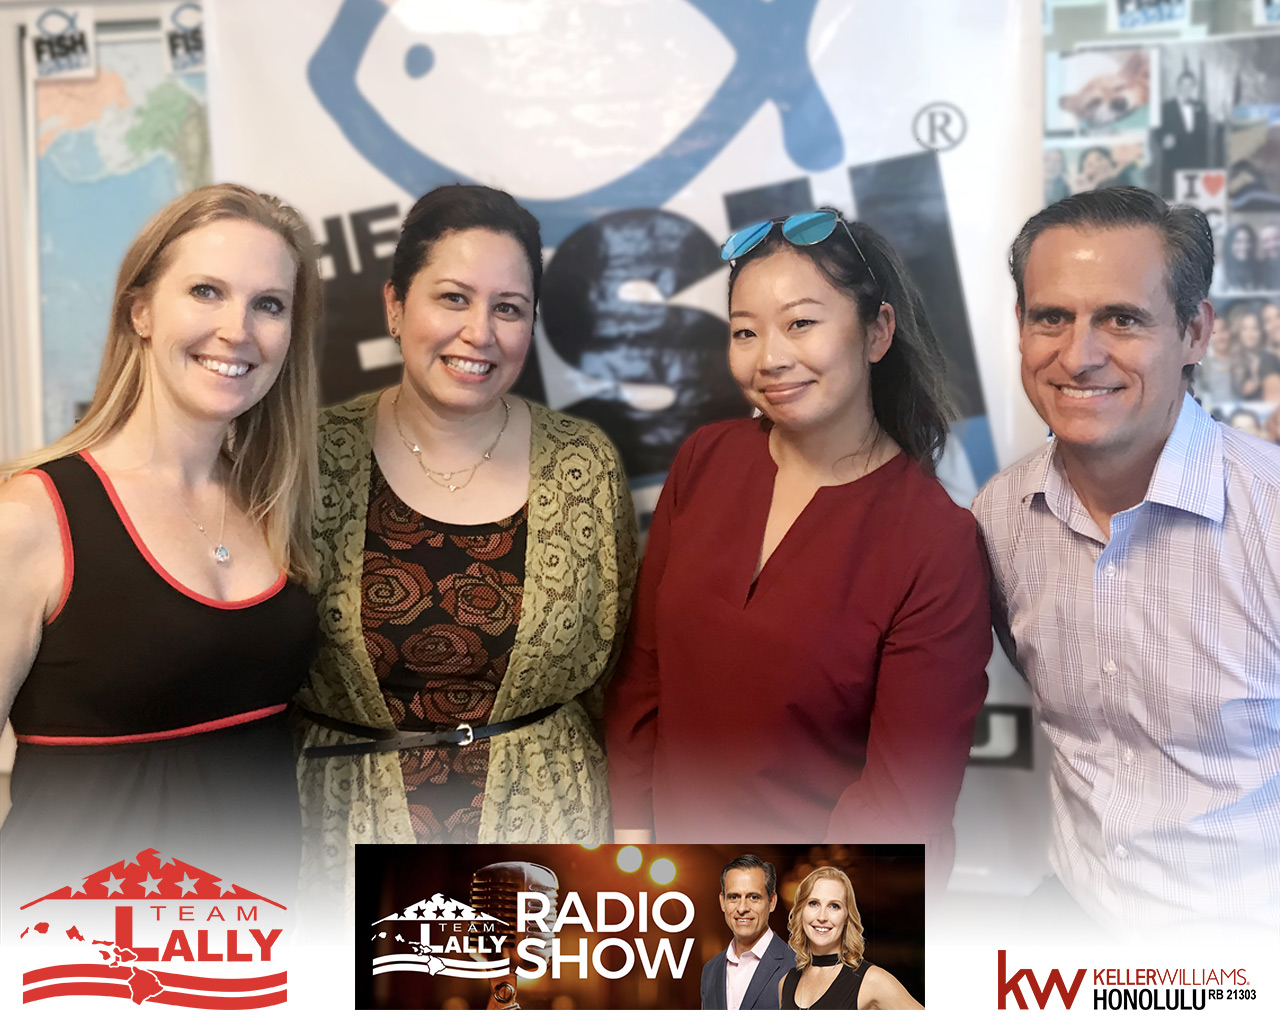 Karwin Sui and Dawn Pasikala on the Team Lally Radio Show